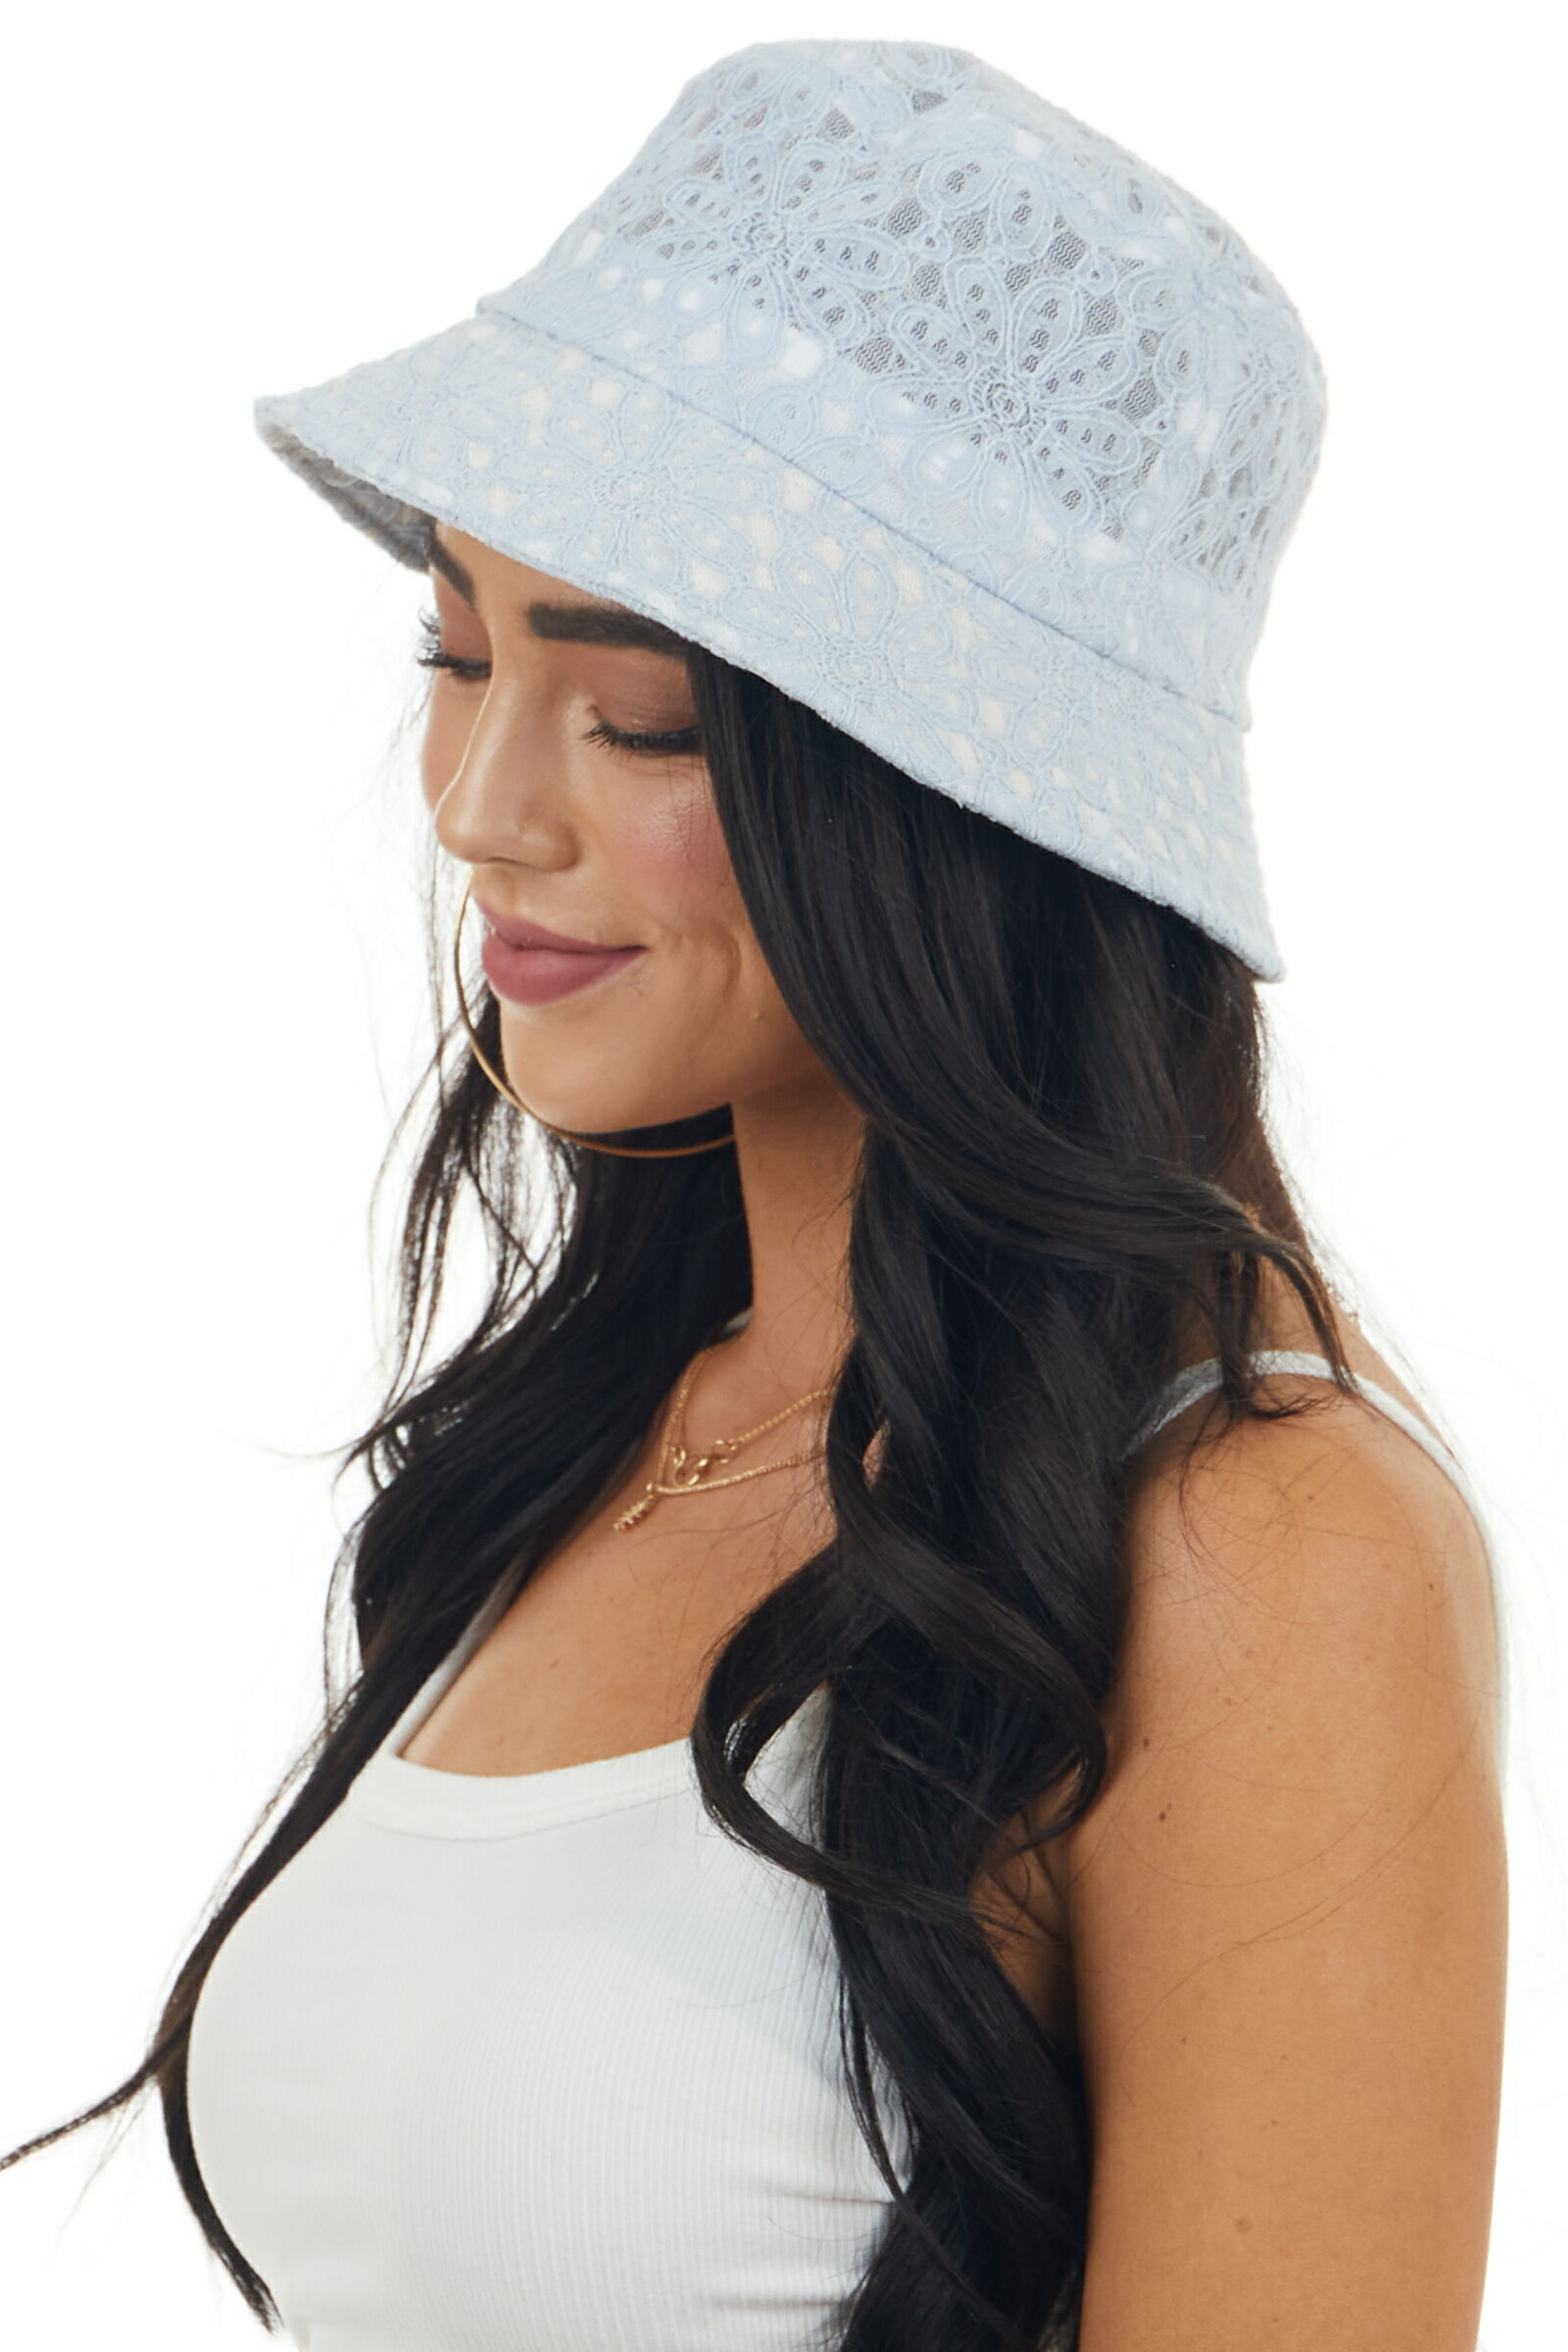 Powder Blue Floral Lace Bucket Hat with Sheer Mesh Details